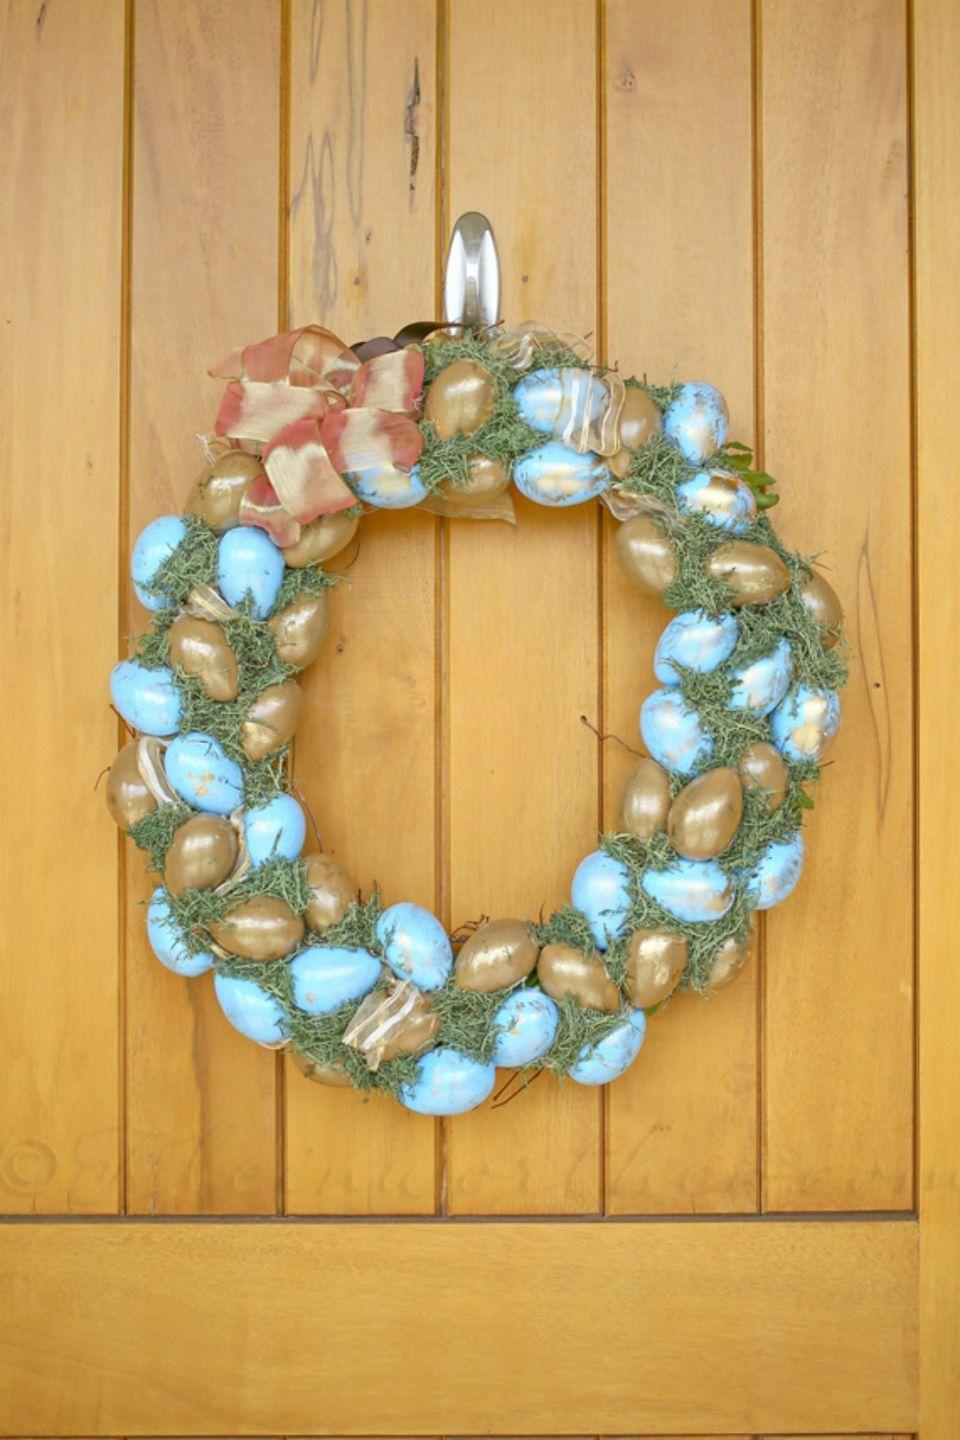 """<p>Spray paint half of your eggs blue and half of them gold, filling the gaps with reindeer moss.</p><p><strong>Get the tutorial at <a href=""""http://www.kleinworthco.com/2014/04/blue-gold-easter-wreath.html"""" rel=""""nofollow noopener"""" target=""""_blank"""" data-ylk=""""slk:Kleinworth & Co"""" class=""""link rapid-noclick-resp"""">Kleinworth & Co</a>. </strong><br></p><p><strong><a class=""""link rapid-noclick-resp"""" href=""""https://www.amazon.com/Gigules-Imitation-Painting-Crafting-Decoration/dp/B07CQD174T?tag=syn-yahoo-20&ascsubtag=%5Bartid%7C10050.g.4088%5Bsrc%7Cyahoo-us"""" rel=""""nofollow noopener"""" target=""""_blank"""" data-ylk=""""slk:SHOP GOLD LEAF"""">SHOP GOLD LEAF </a><br></strong></p>"""